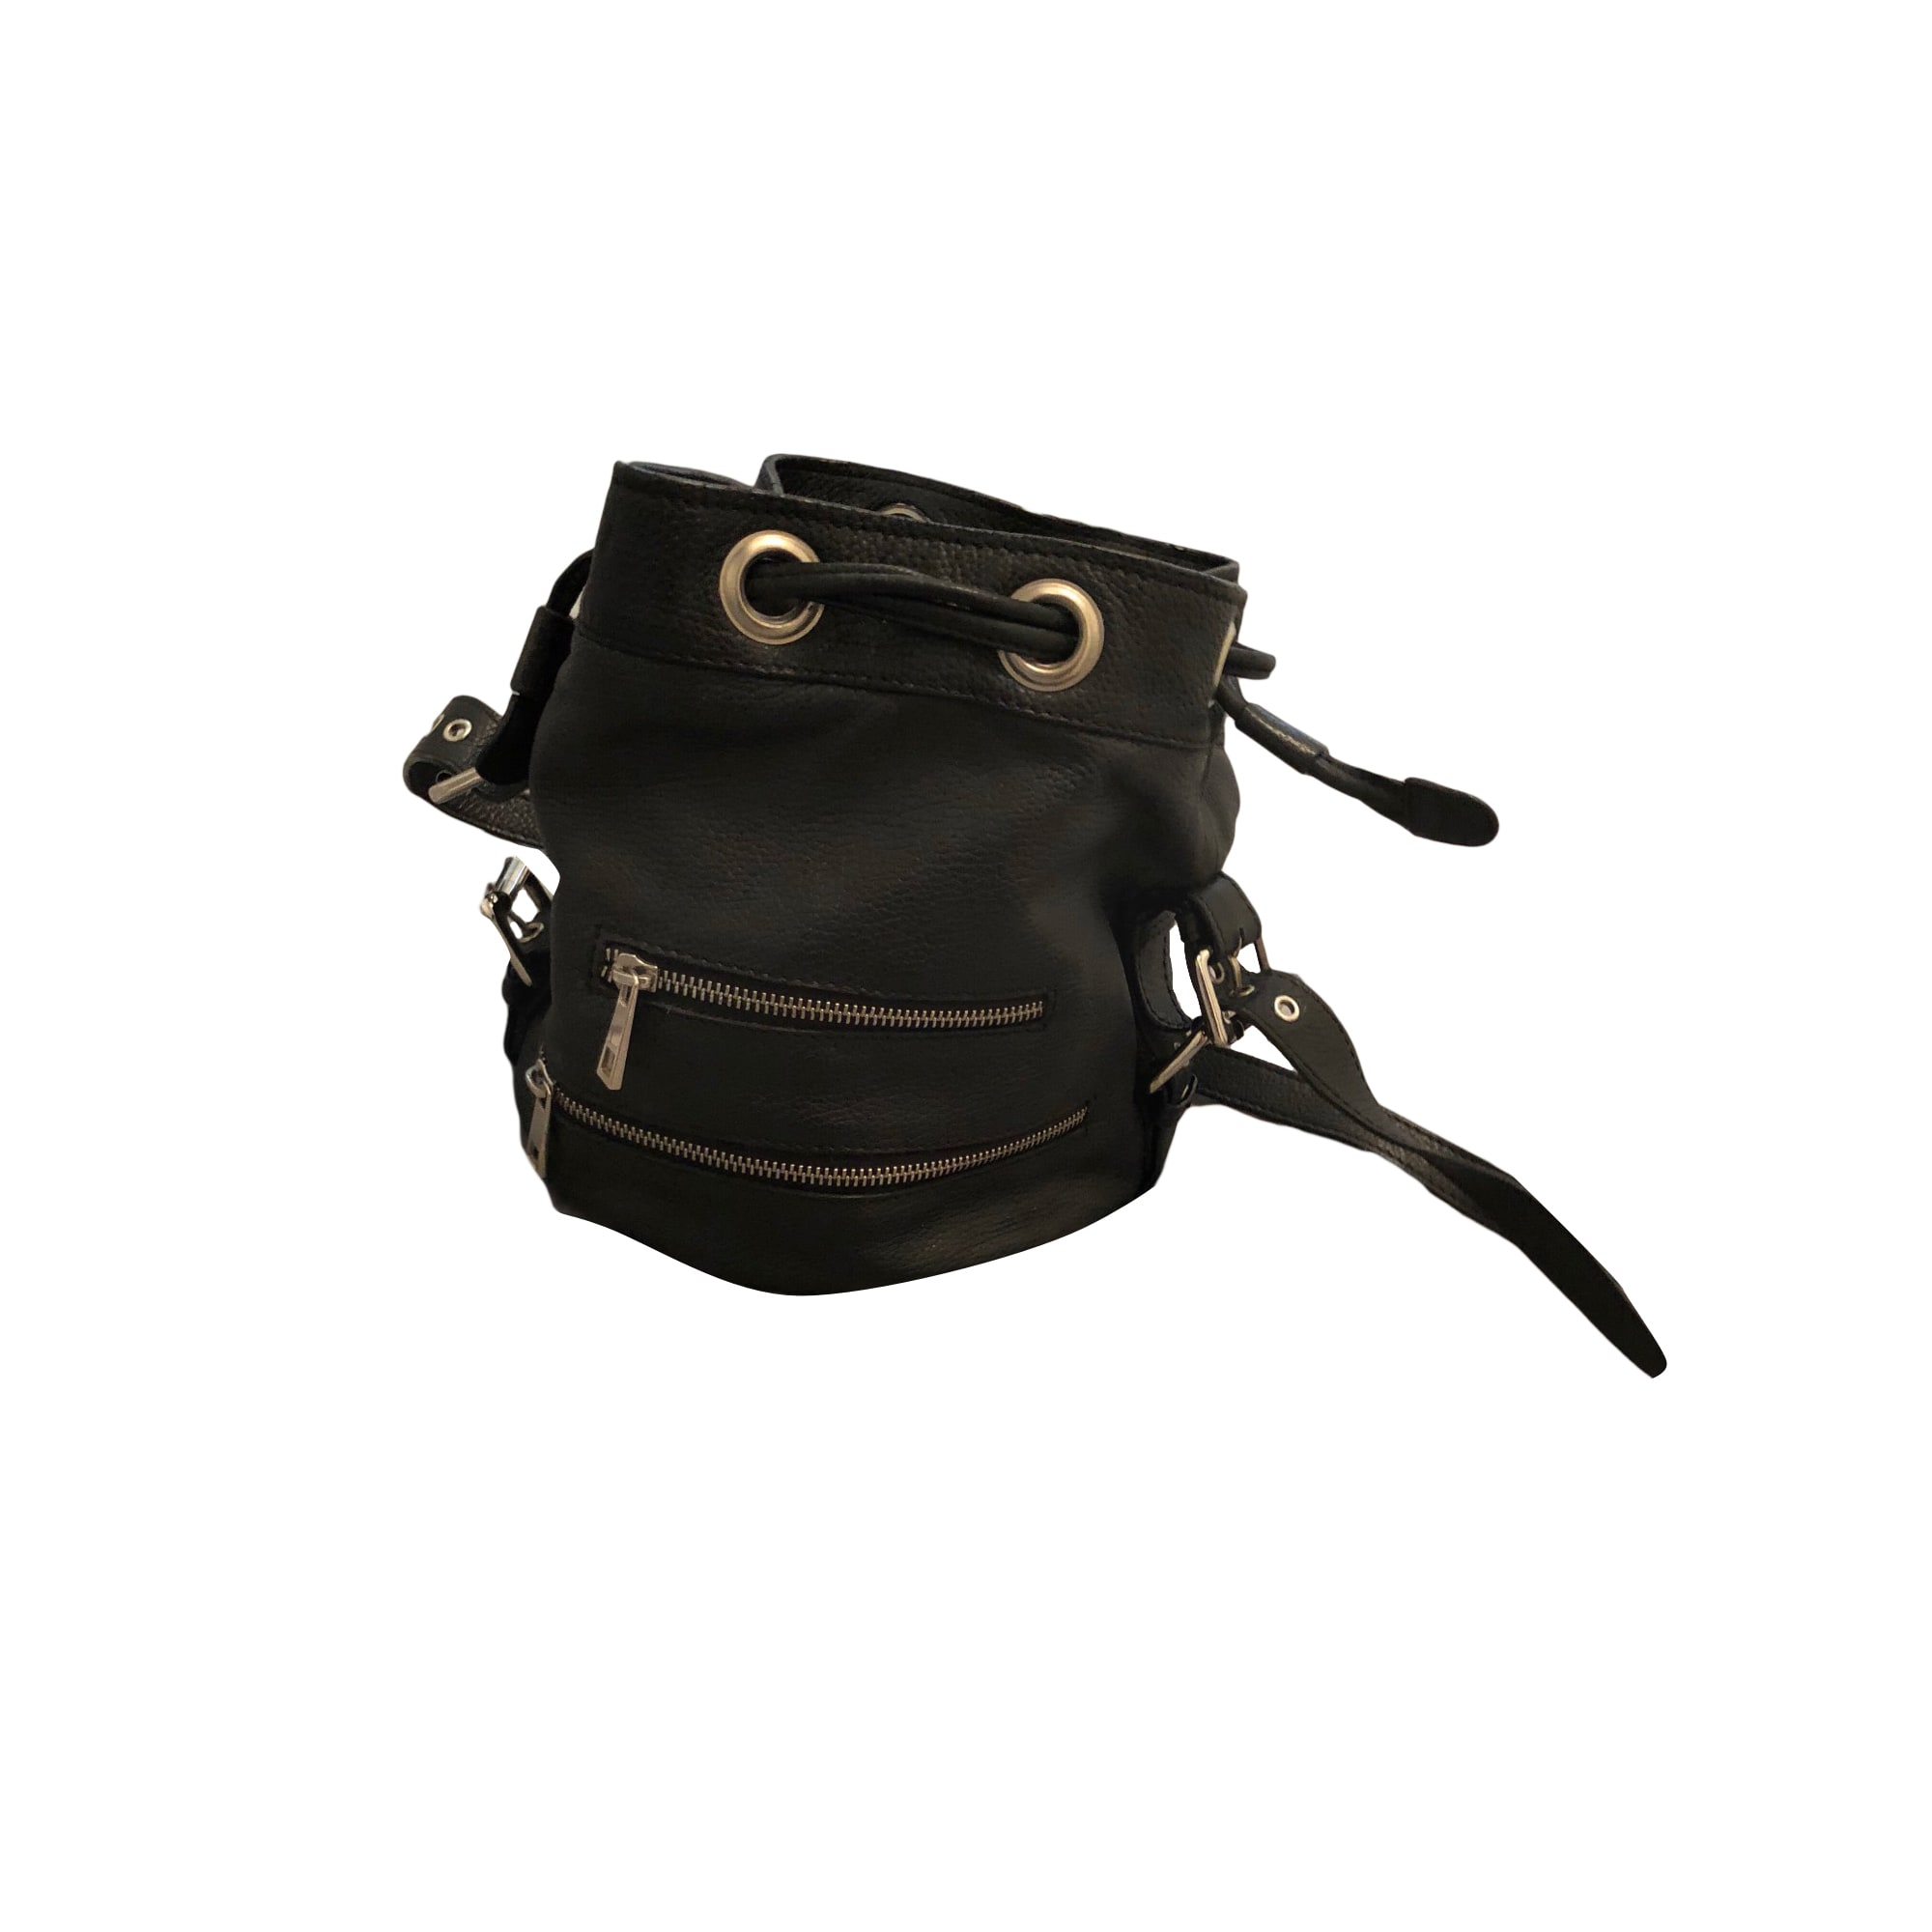 Leather Handbag BA&SH Black